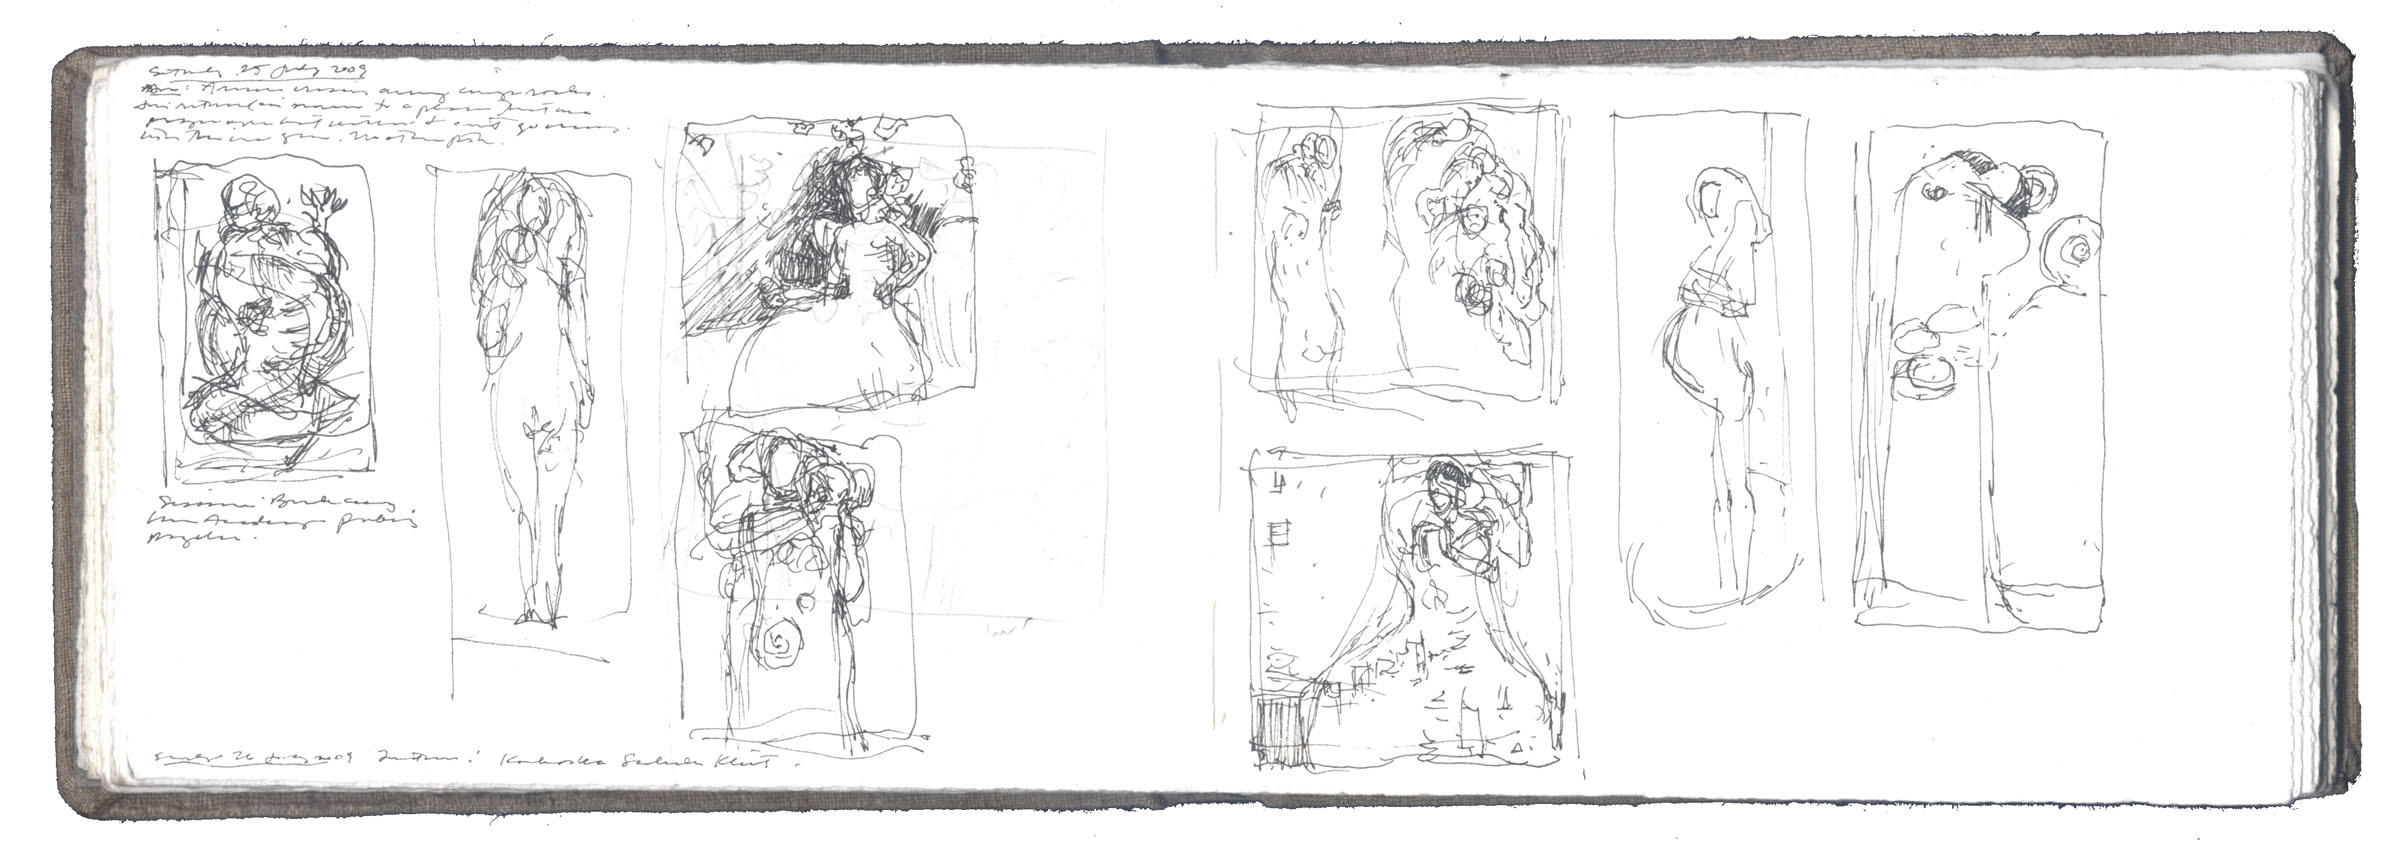 Two pages of sketches after Gustav Klimt and Egon Schiele image